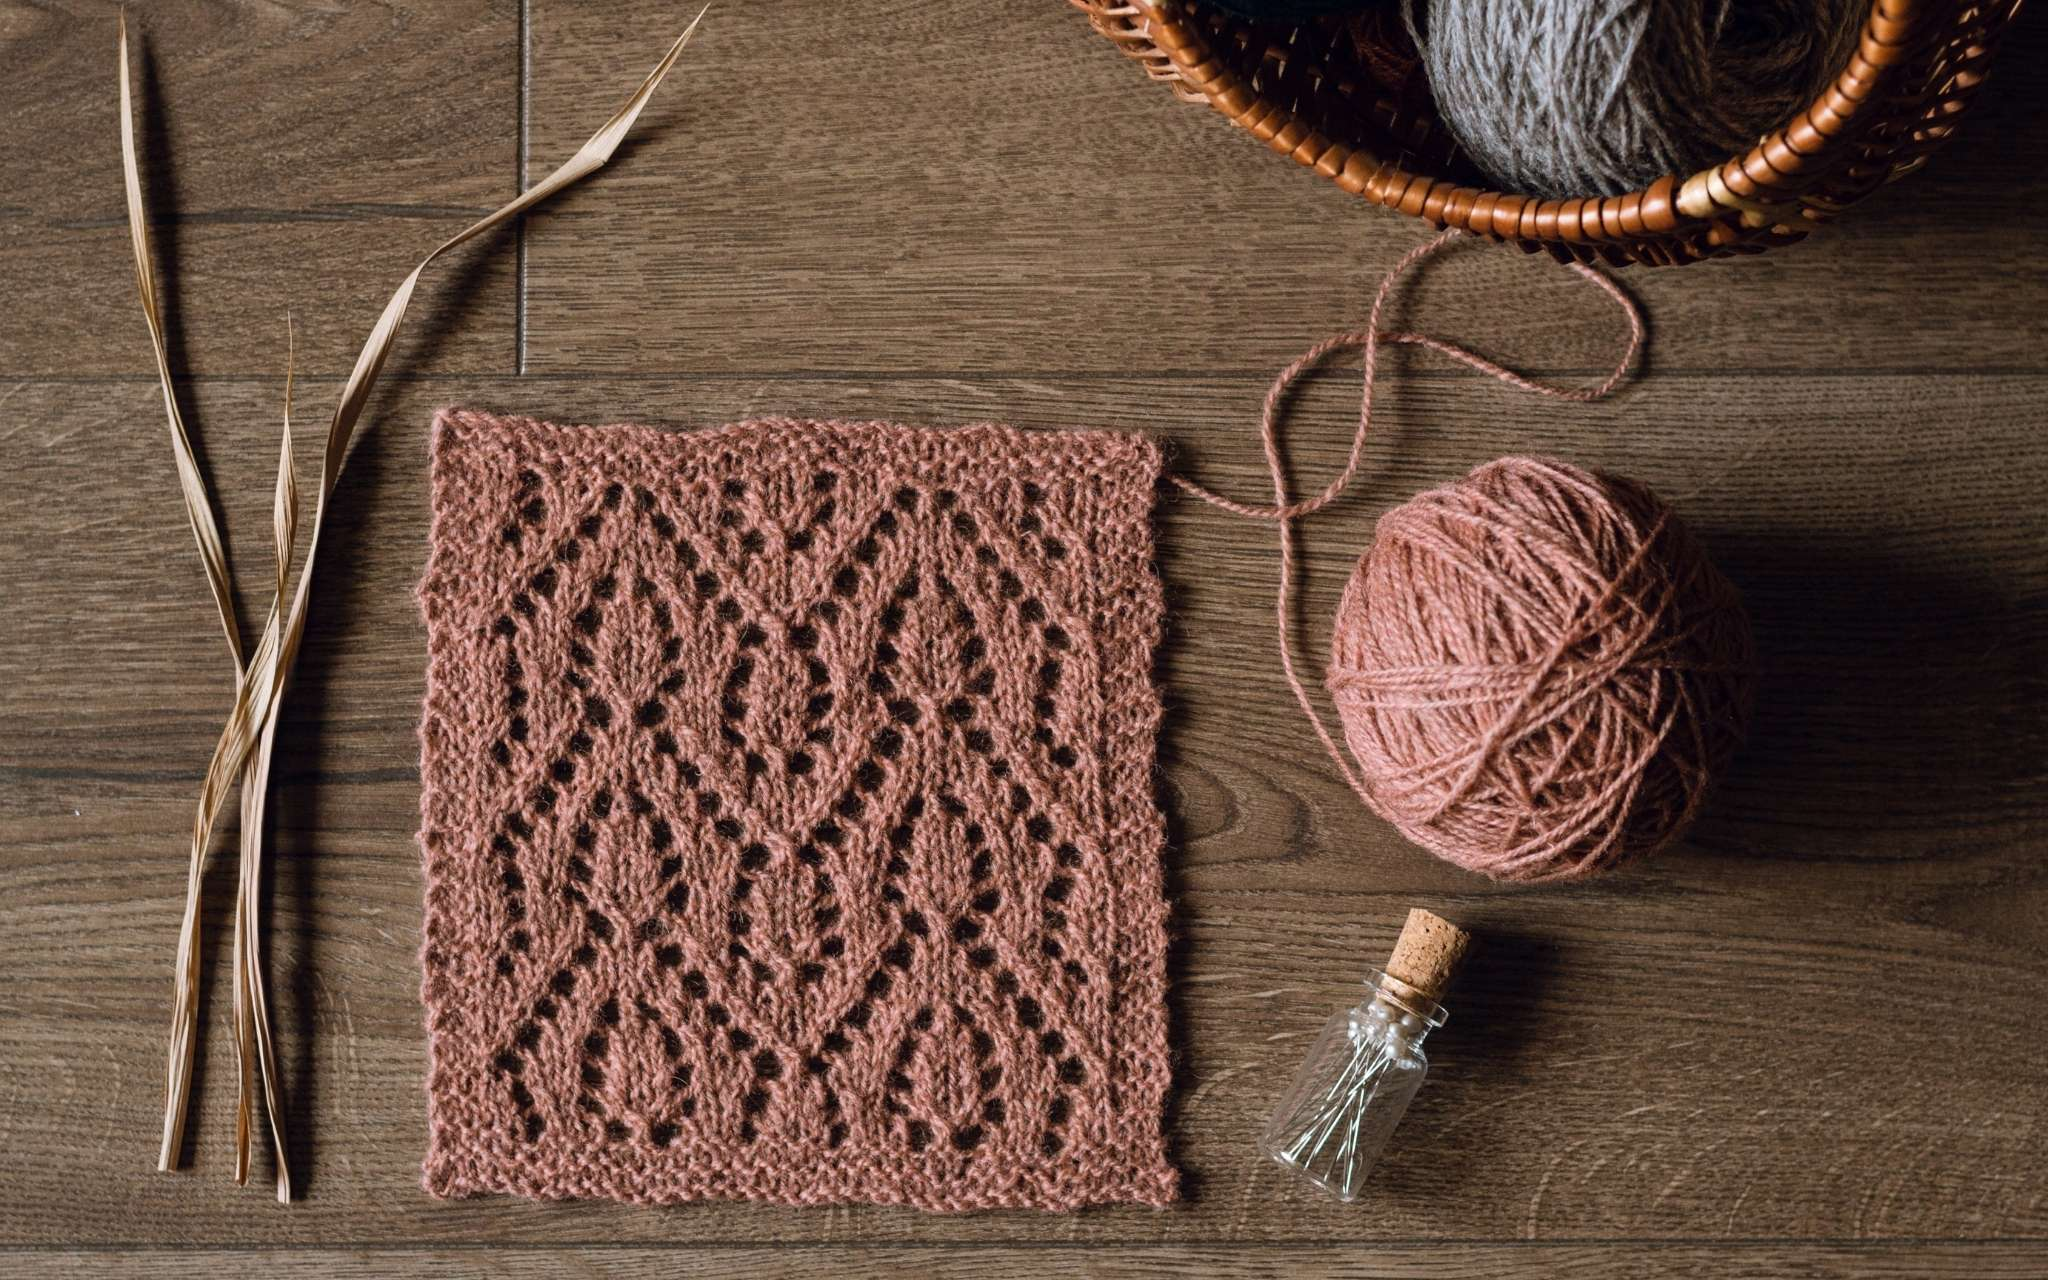 A swatch of lace in coral laid flat on a wooden surface. There are some dried stems, scissors and a bottle of pints to the side.